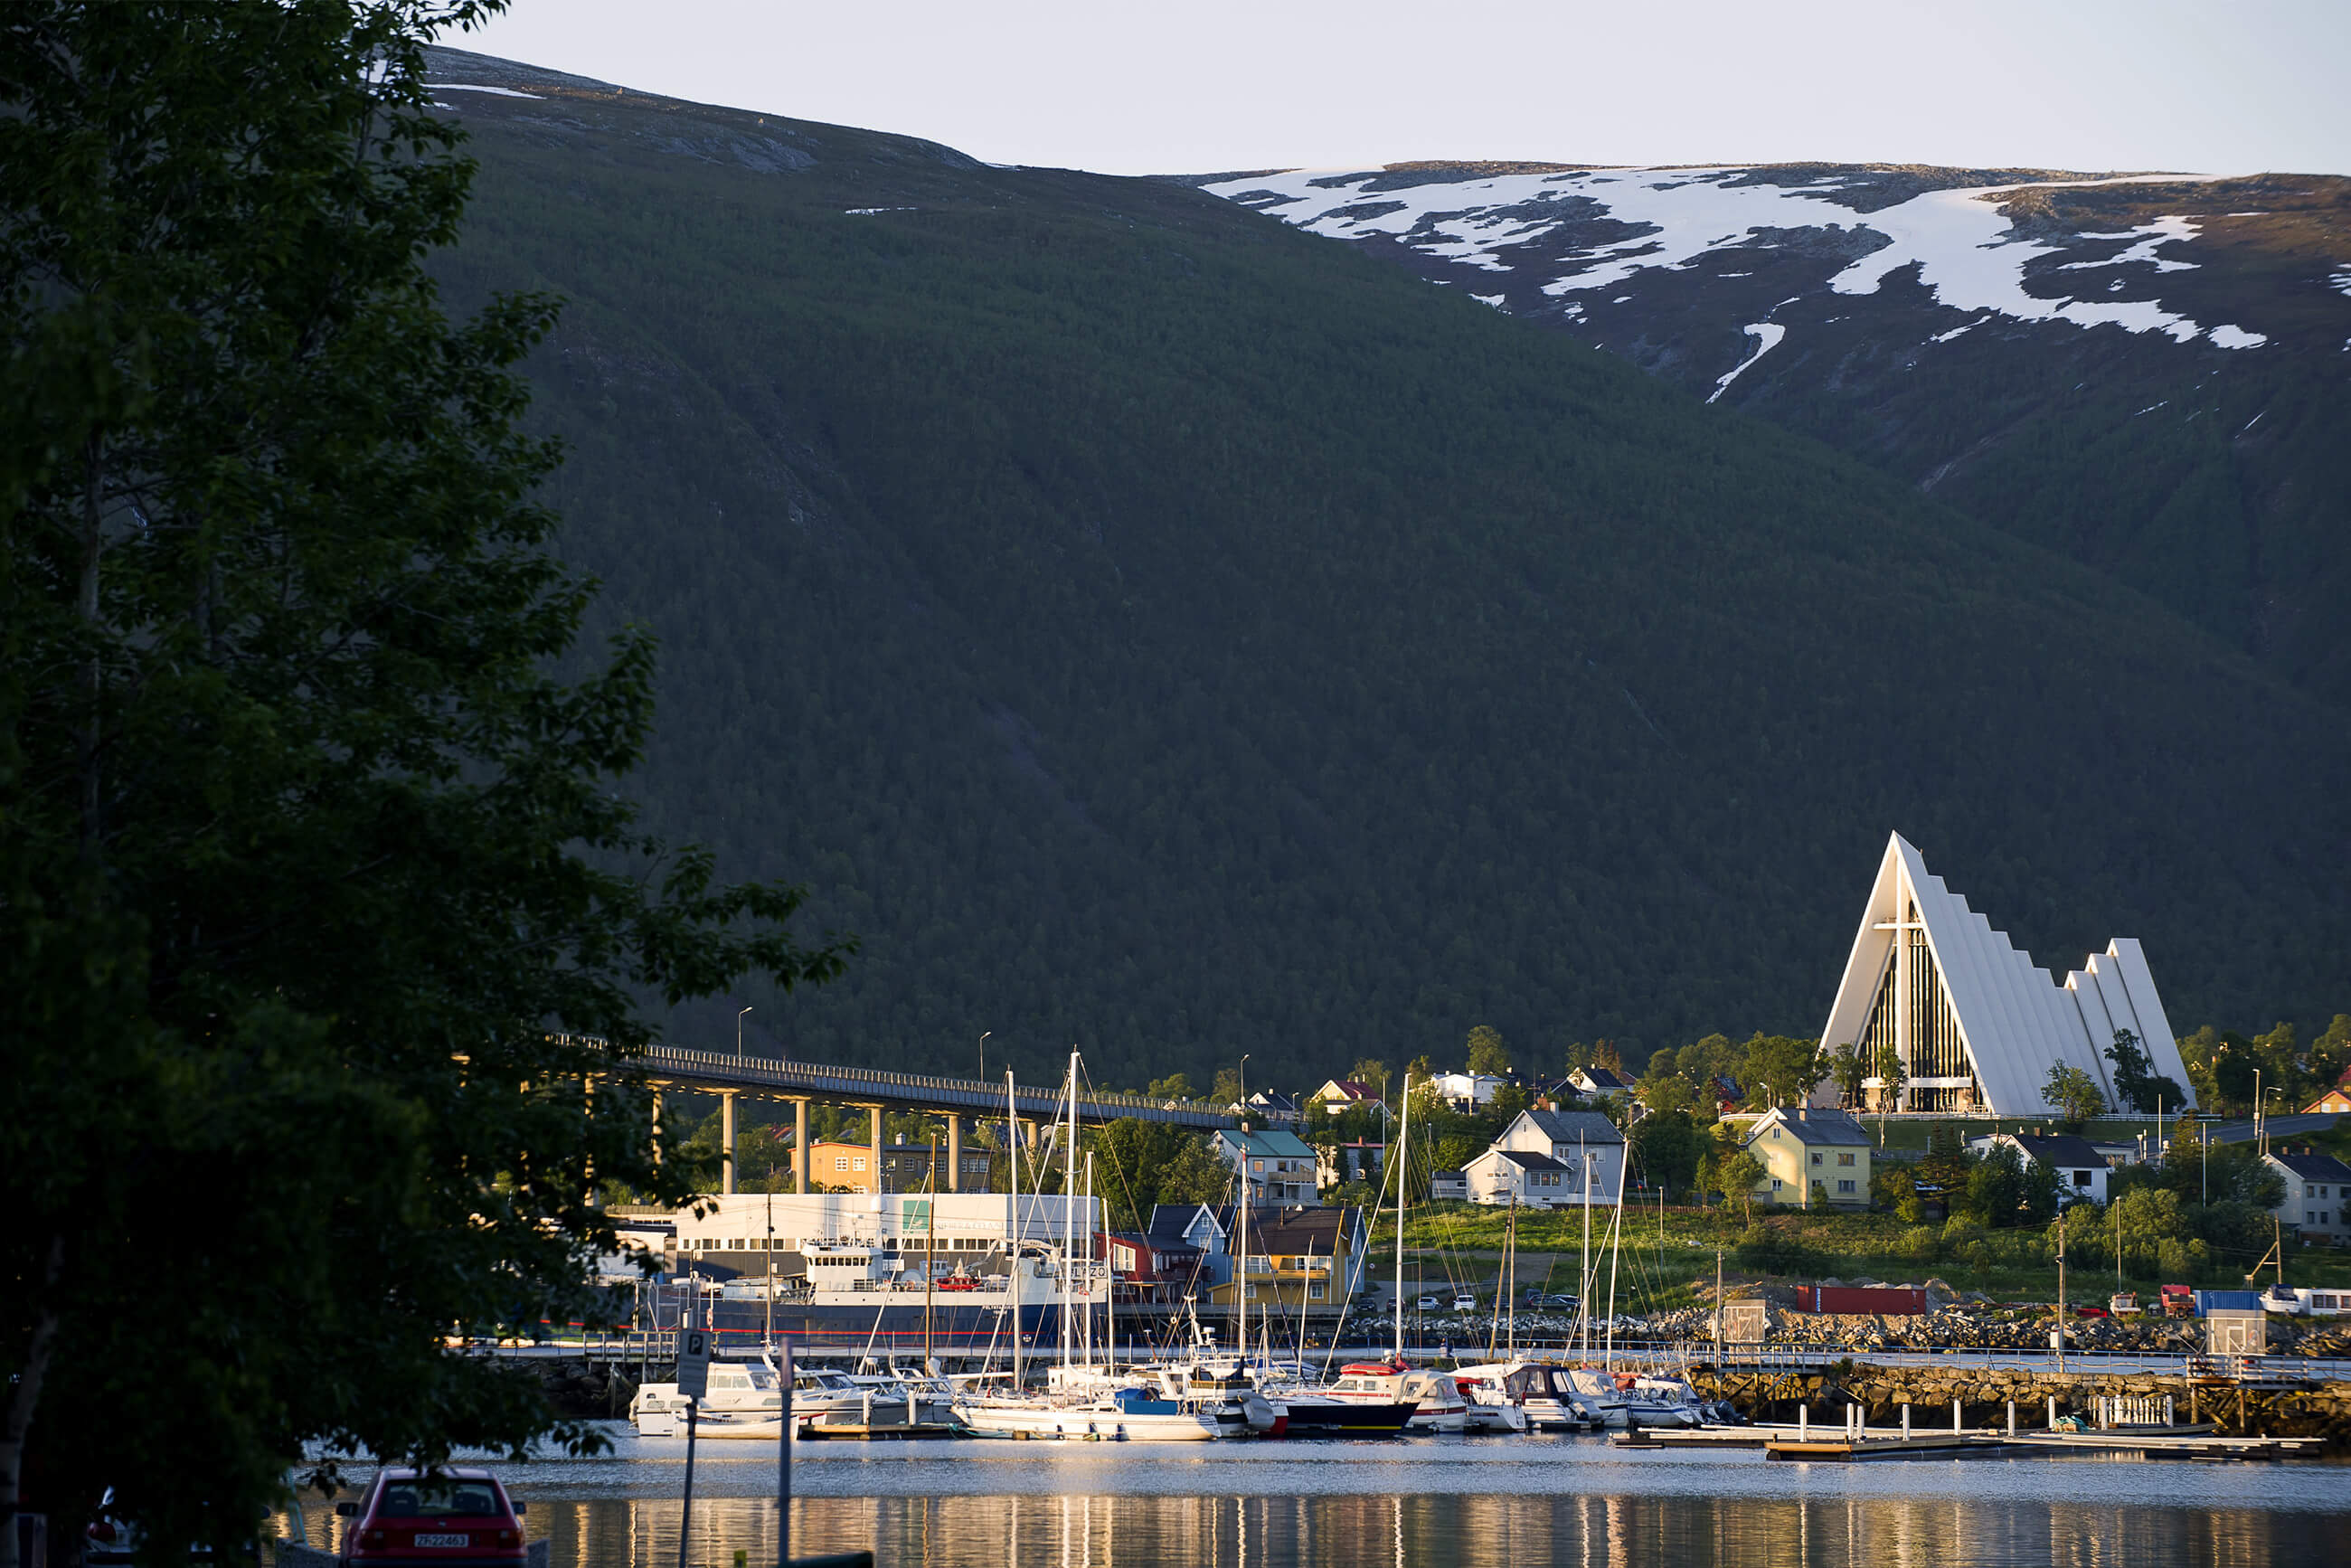 https://bubo.sk/uploads/galleries/5044/ishavskatedralen-i-tromso-082011-99-0124--foto_ch.jpg